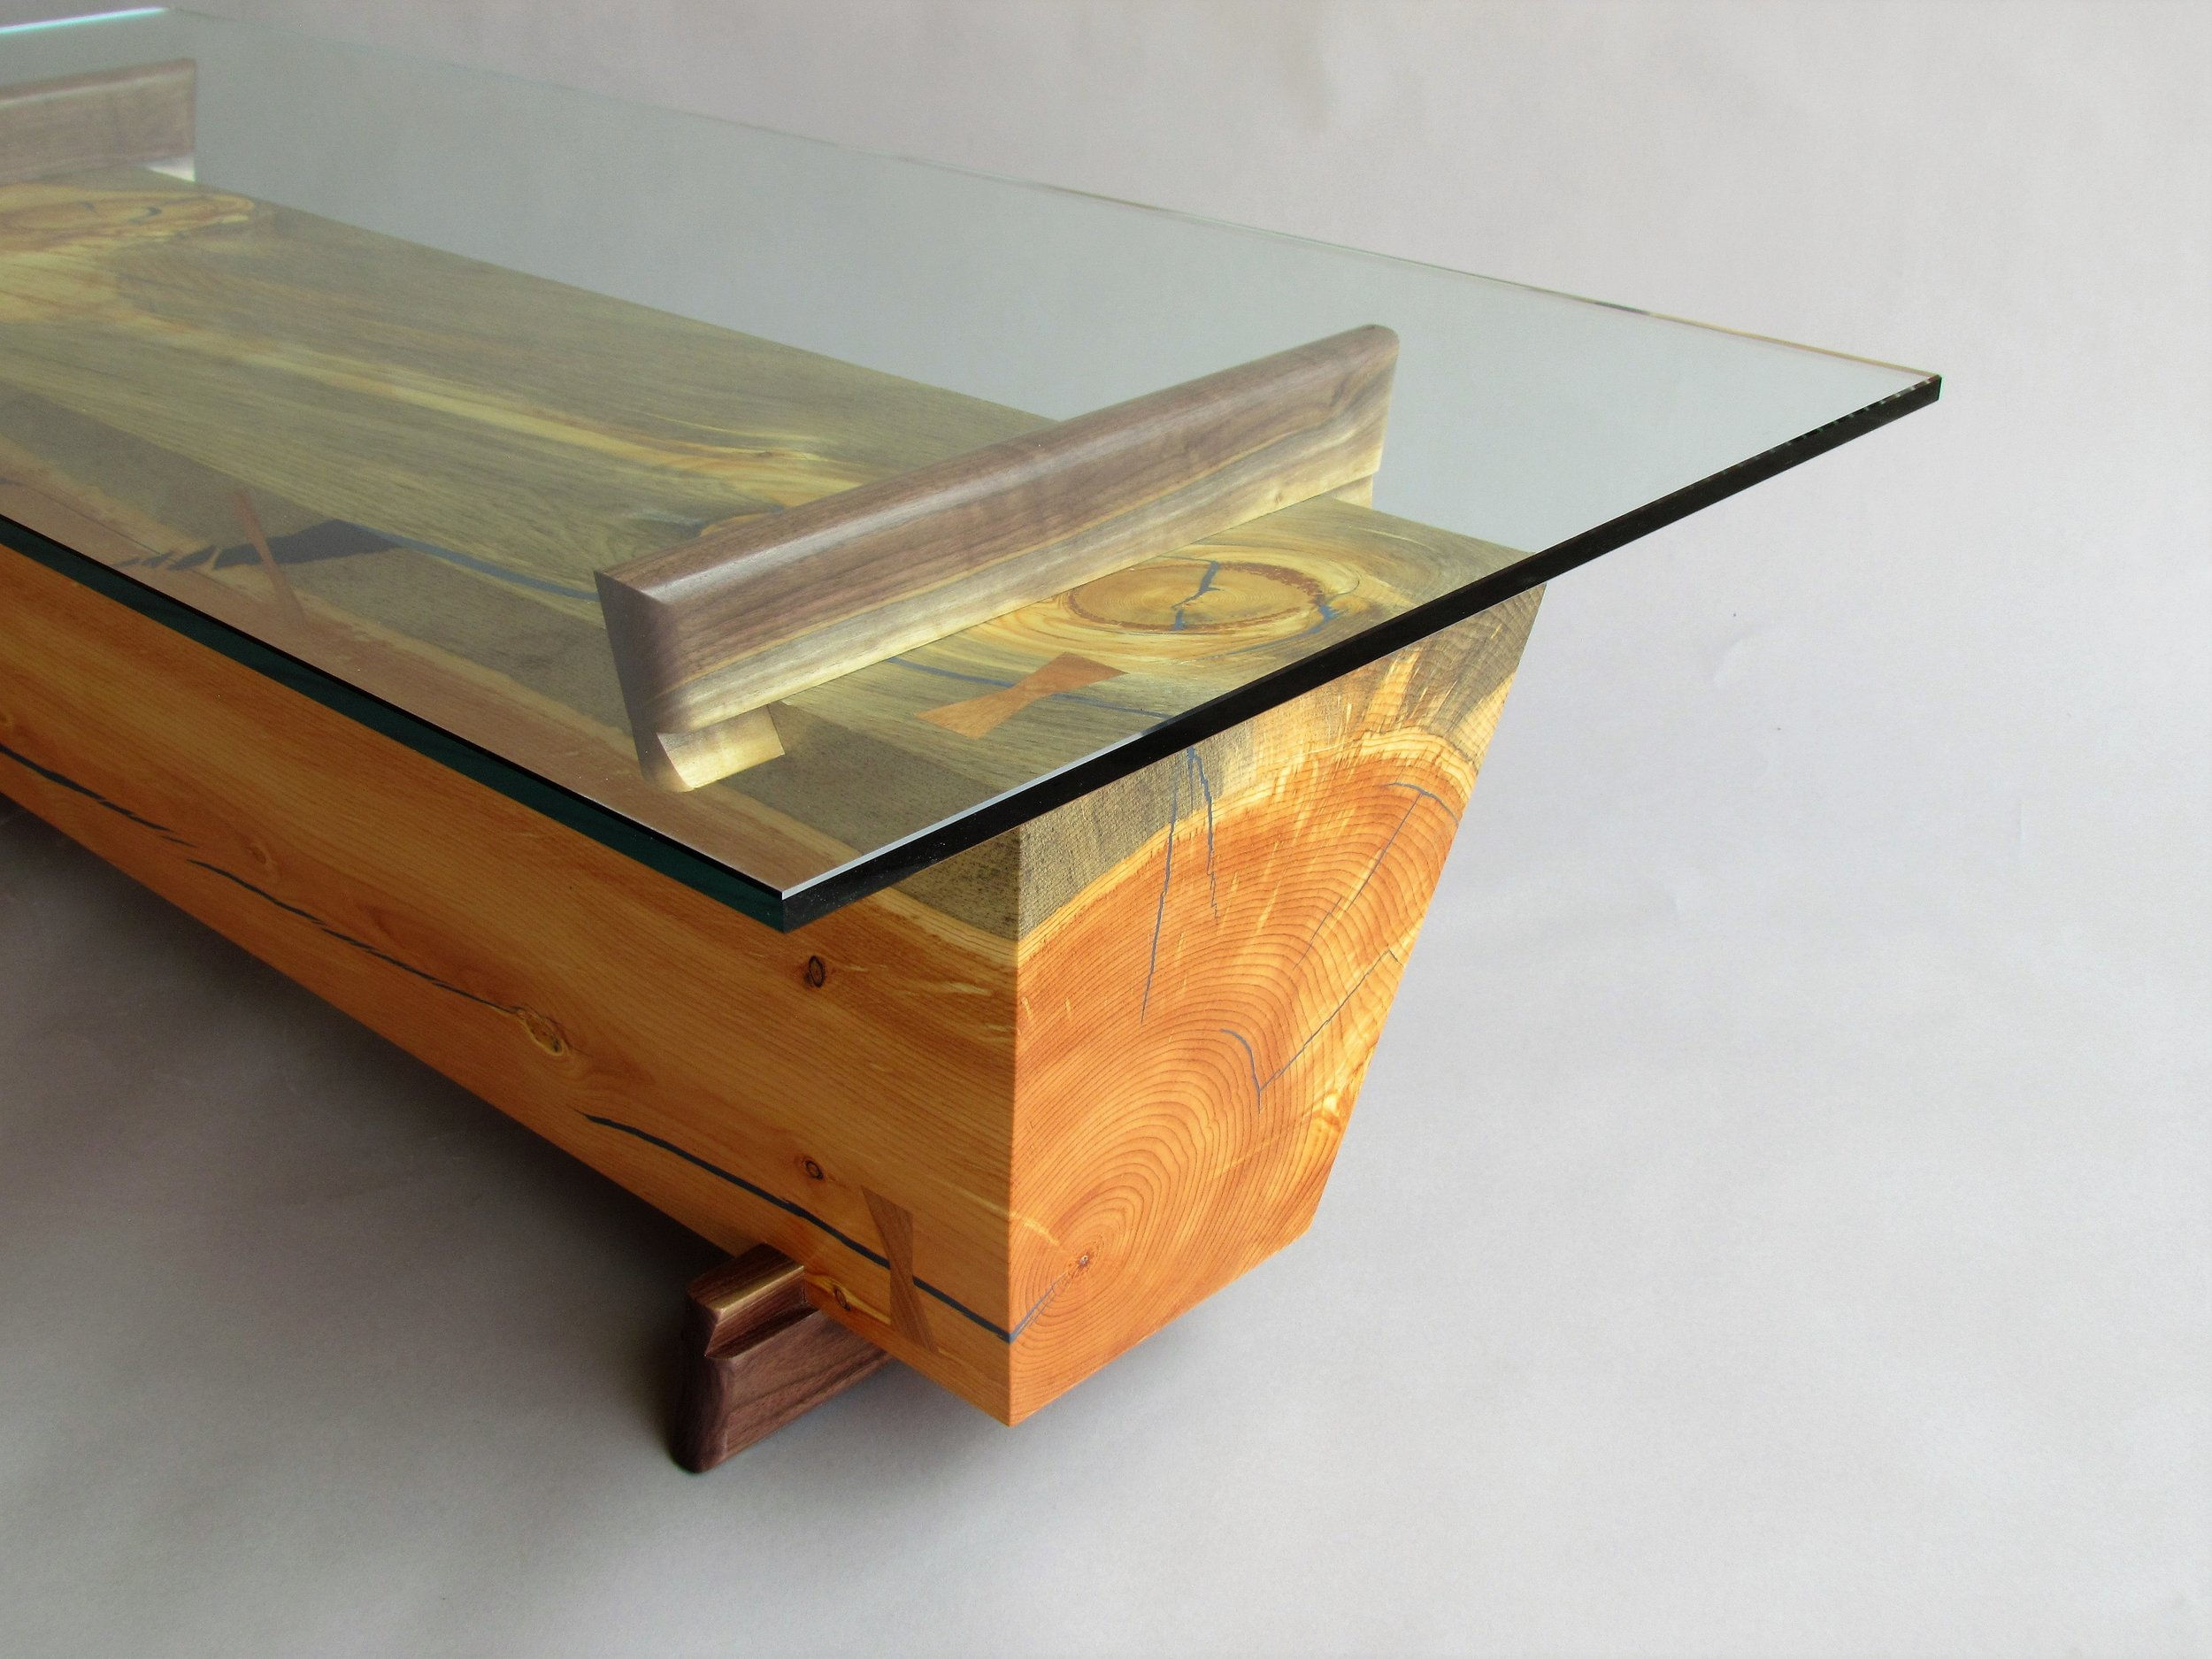 BB-Surface-Glass-Top-Beam-Cocktail-Table-2.jpg